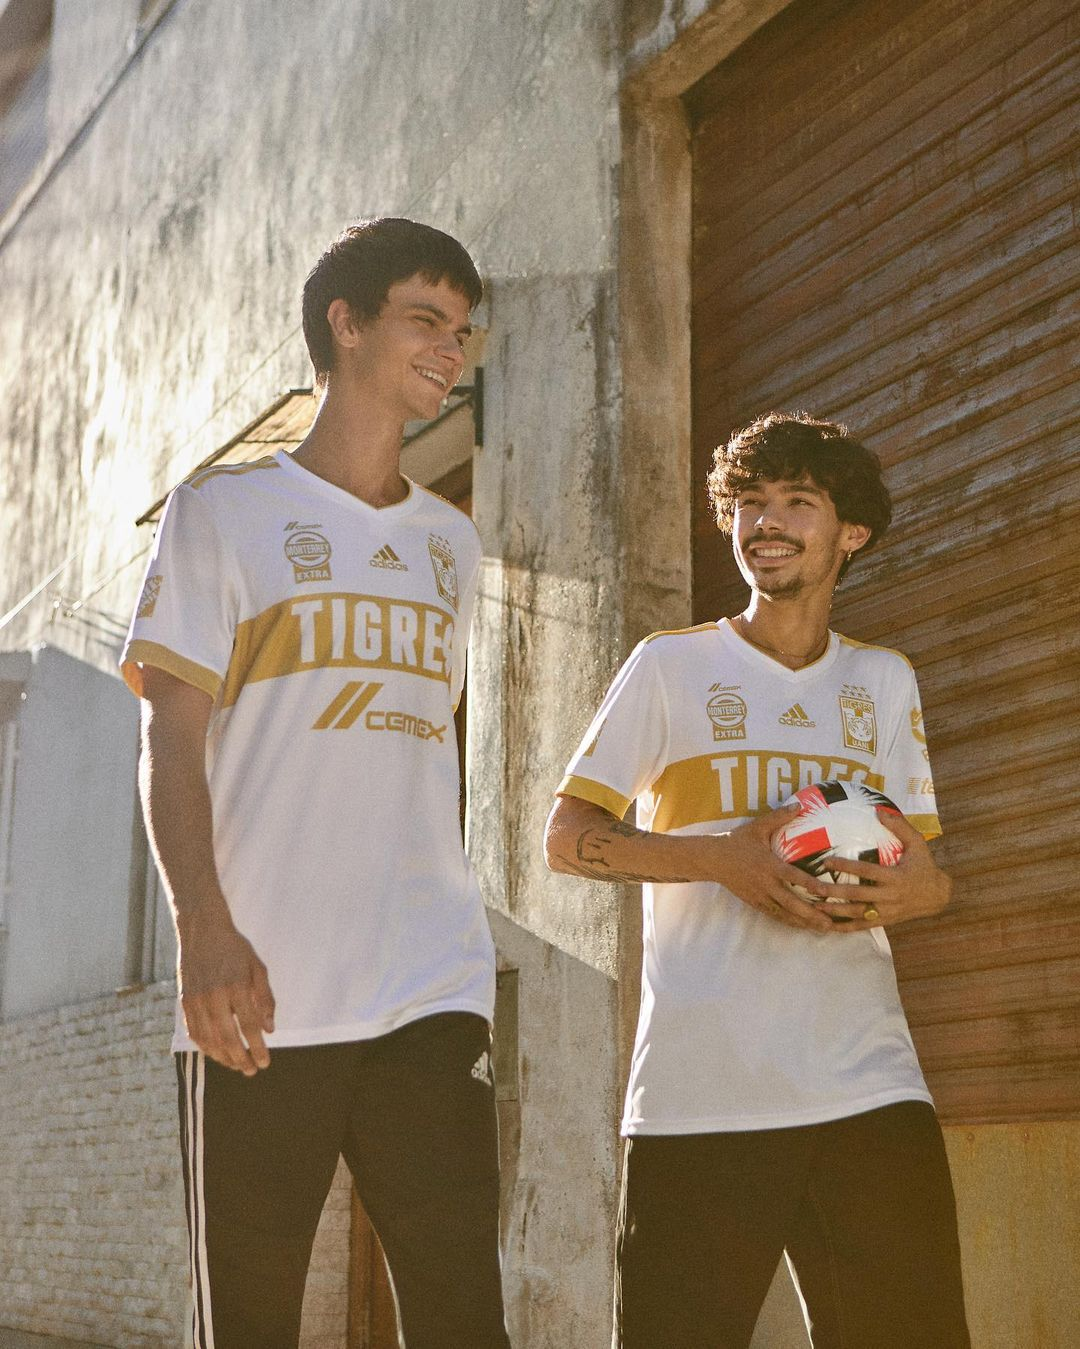 Two men walked down the street with a soccer ball in hand